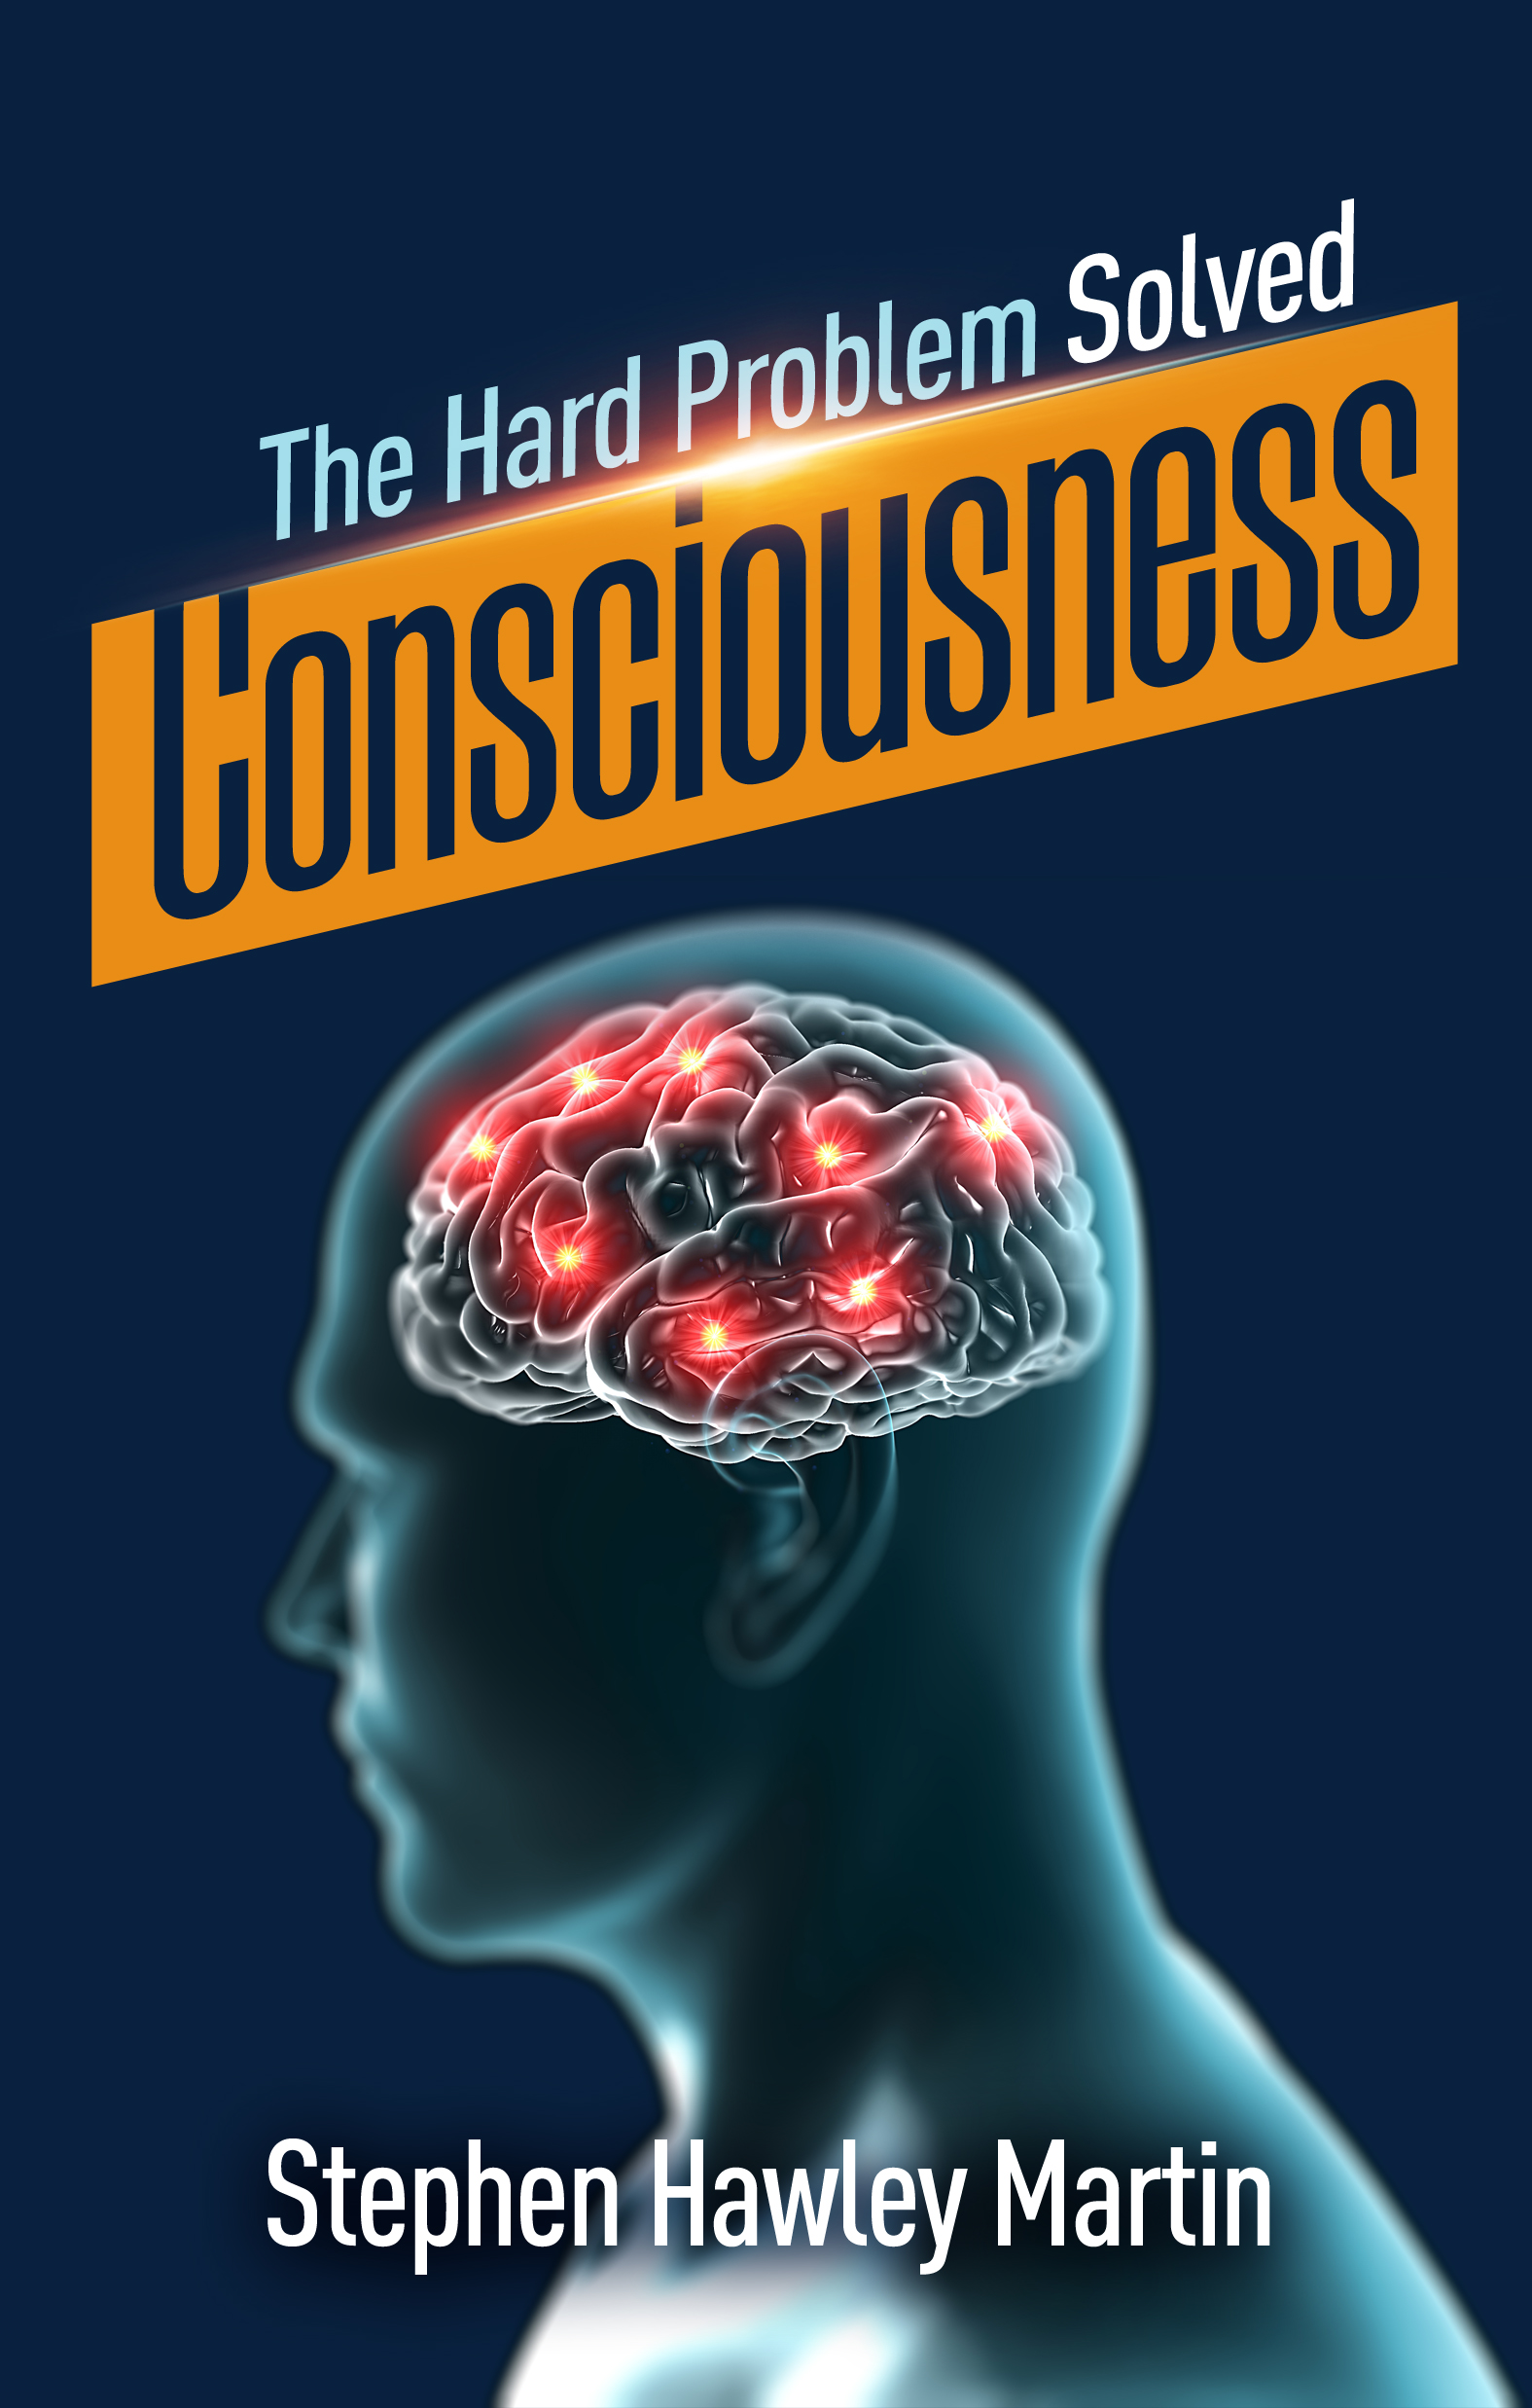 A Bestselling New Release in Neuroscience on Amazon.com Explaining the Origin of Consciousness Receives Praise and Push-Back